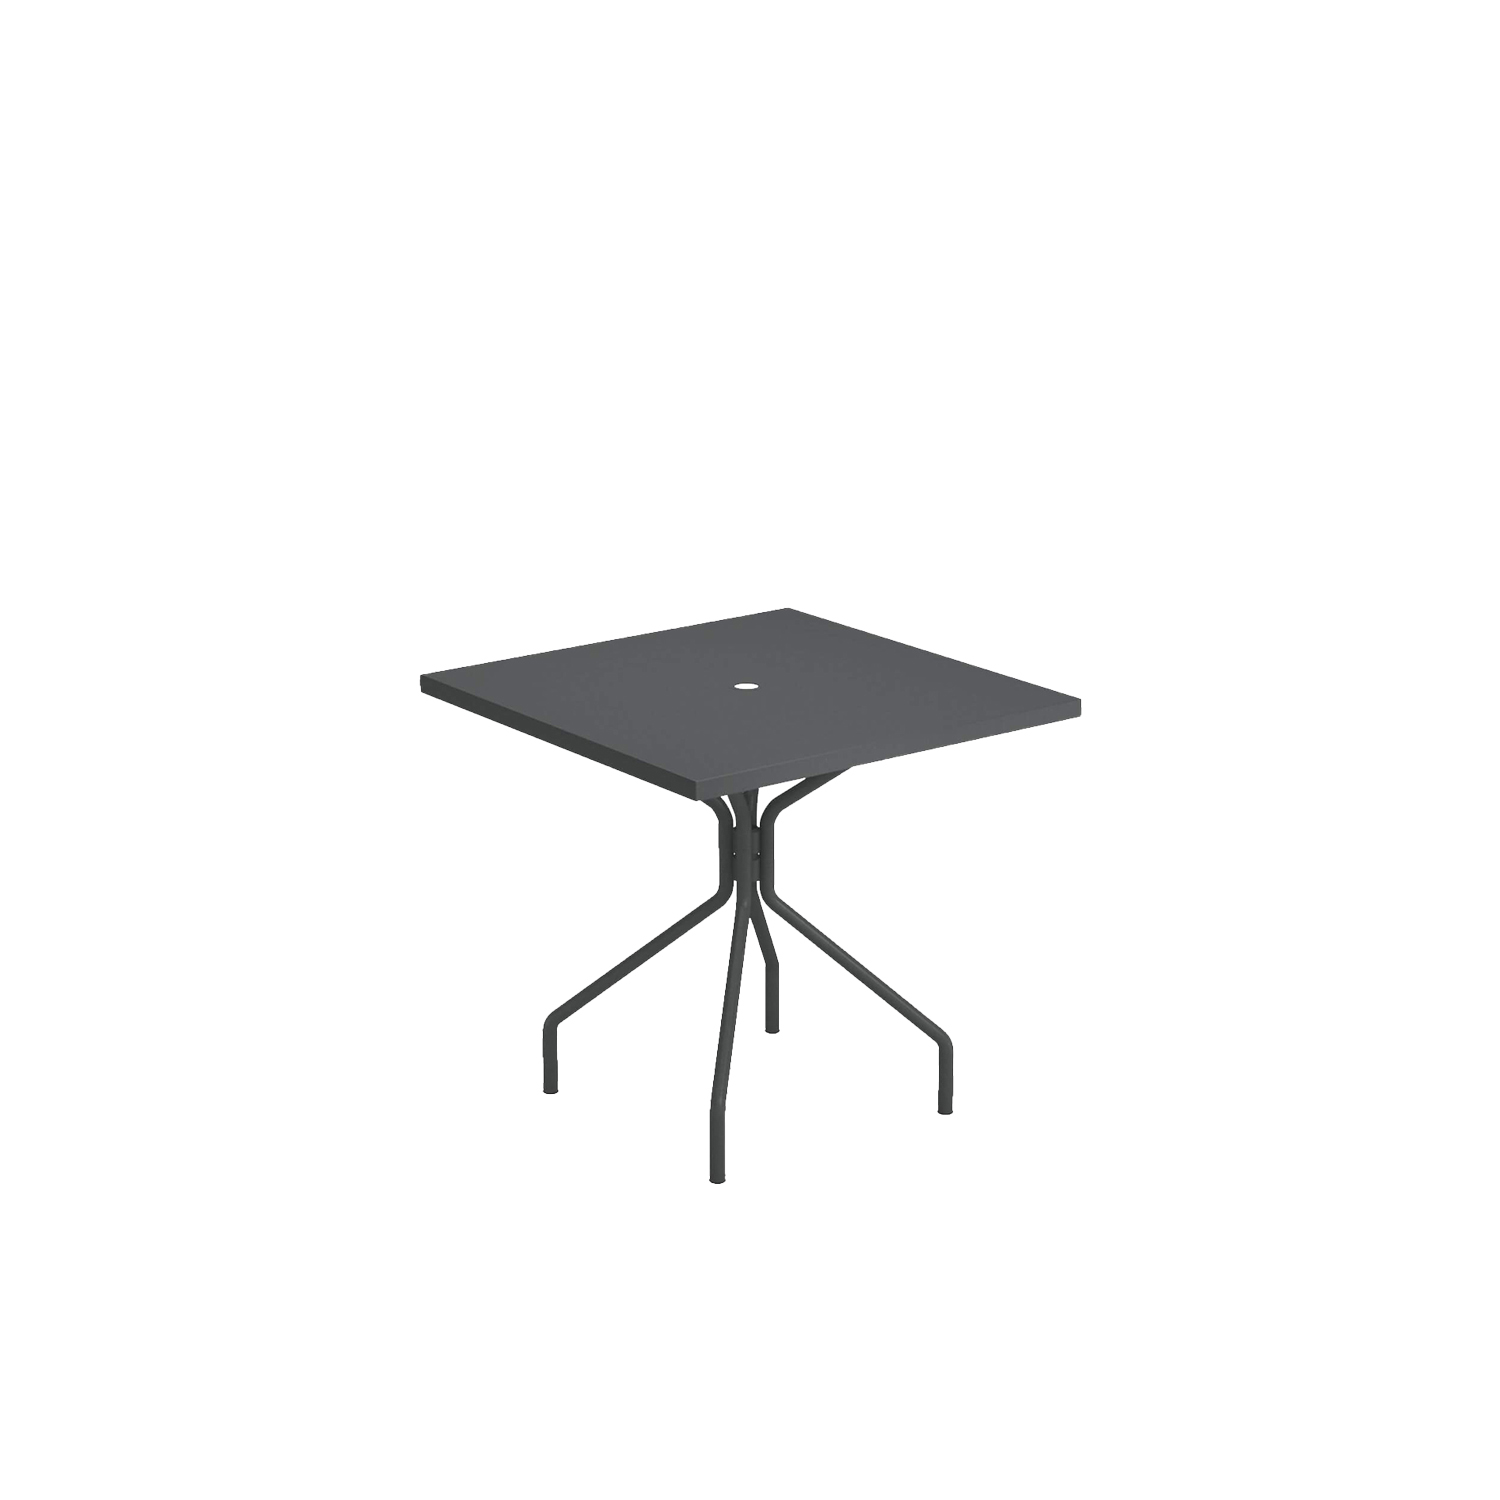 Solid Square Dining Table - A family of essential-looking tables designed to furnish any kind of outdoor space with simplicity: Solid is characterised by the functional steel sheet metal plate, for the most varied use needs.